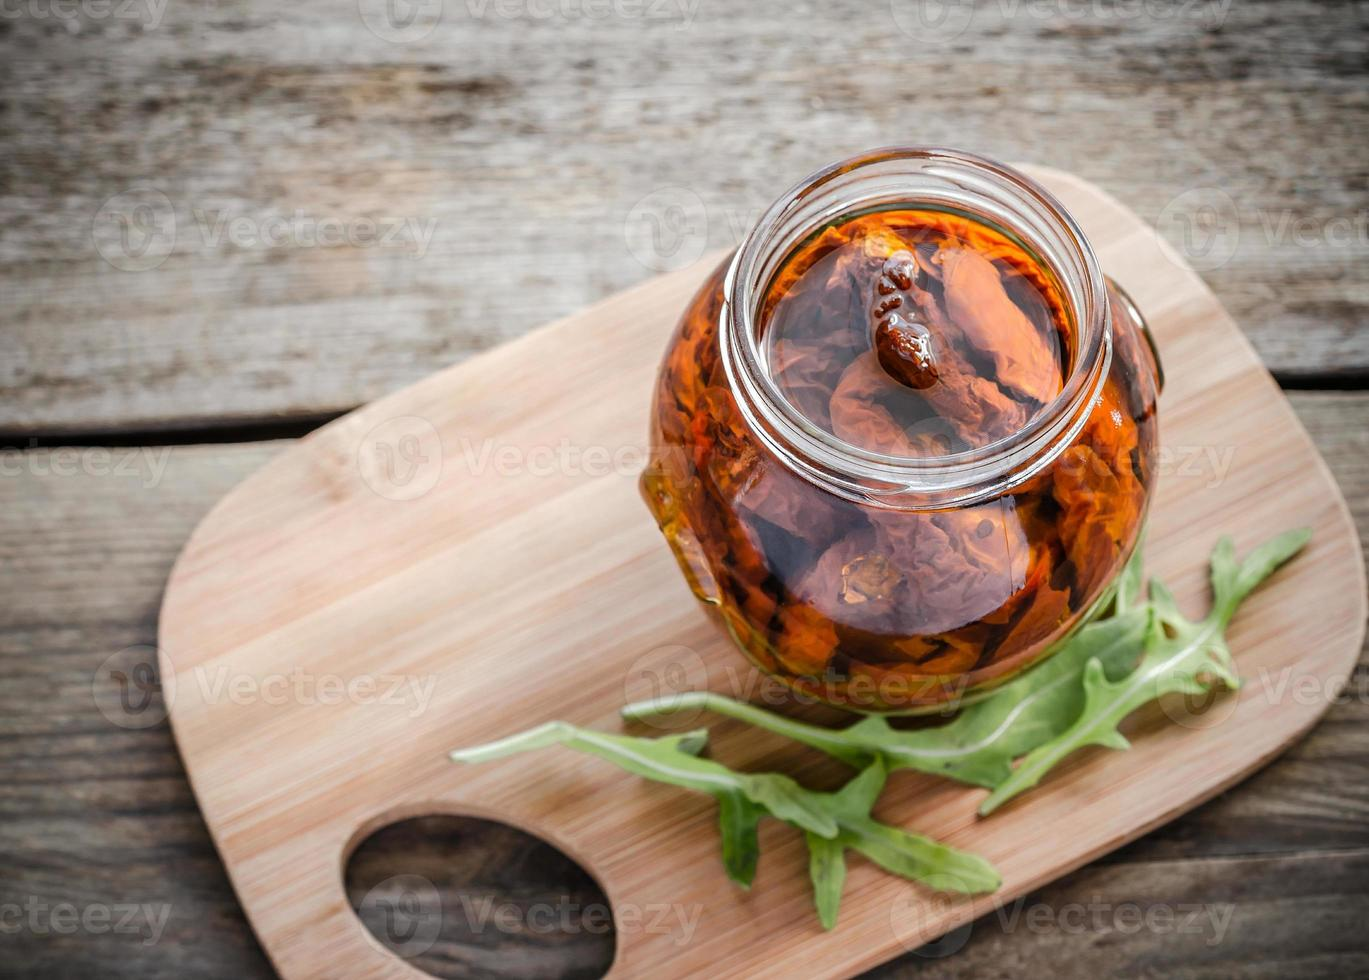 Sun dried tomatoes in olive oil photo